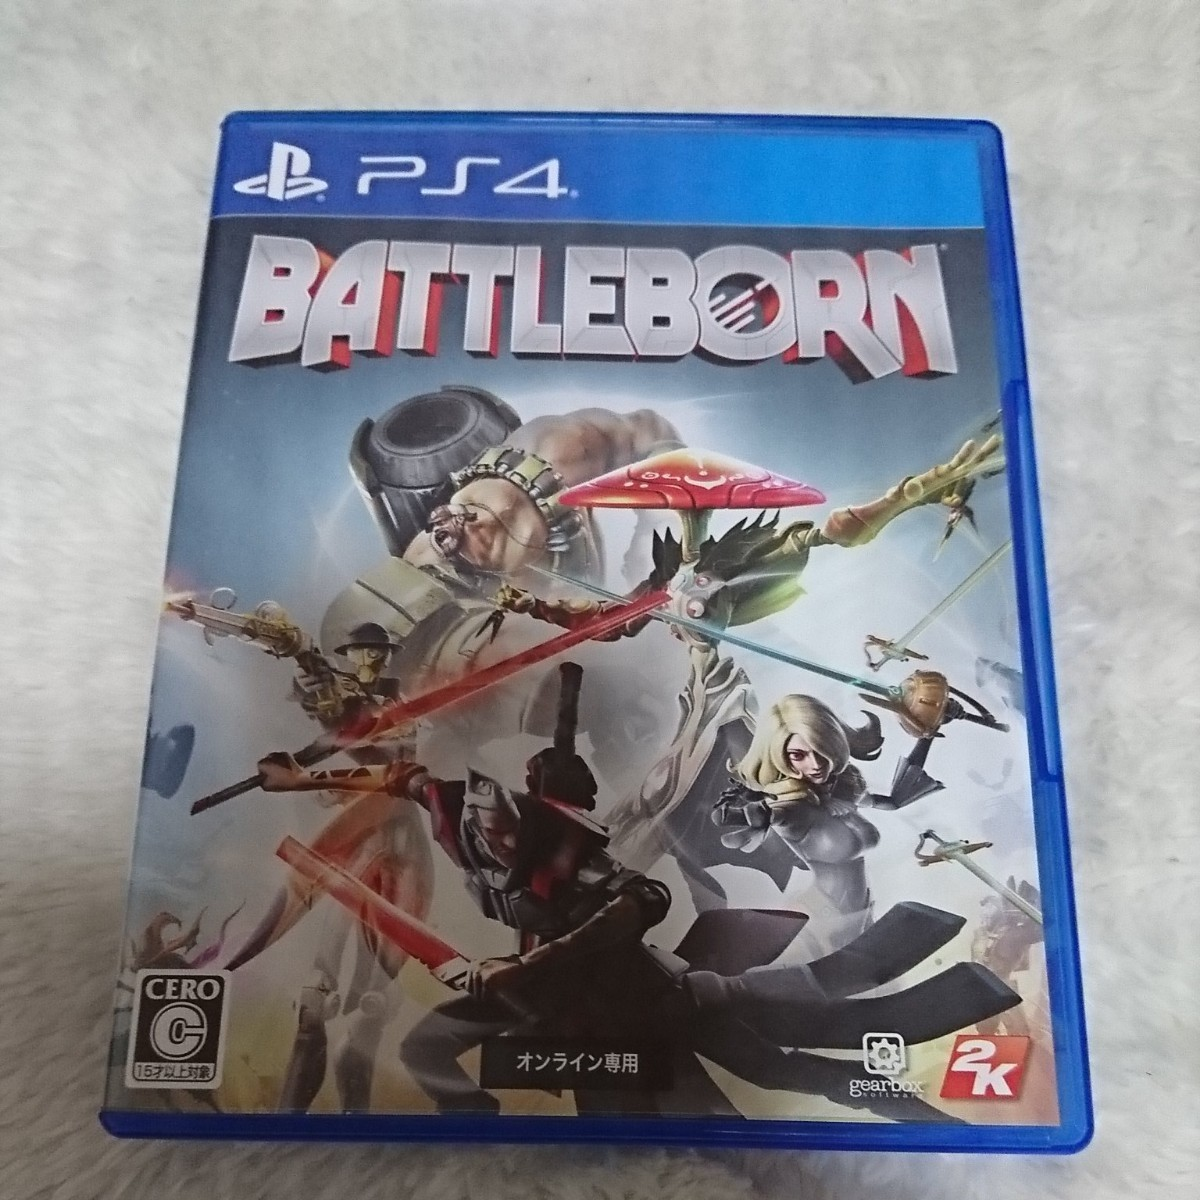 ps4 バトルボーン 中古ソフト